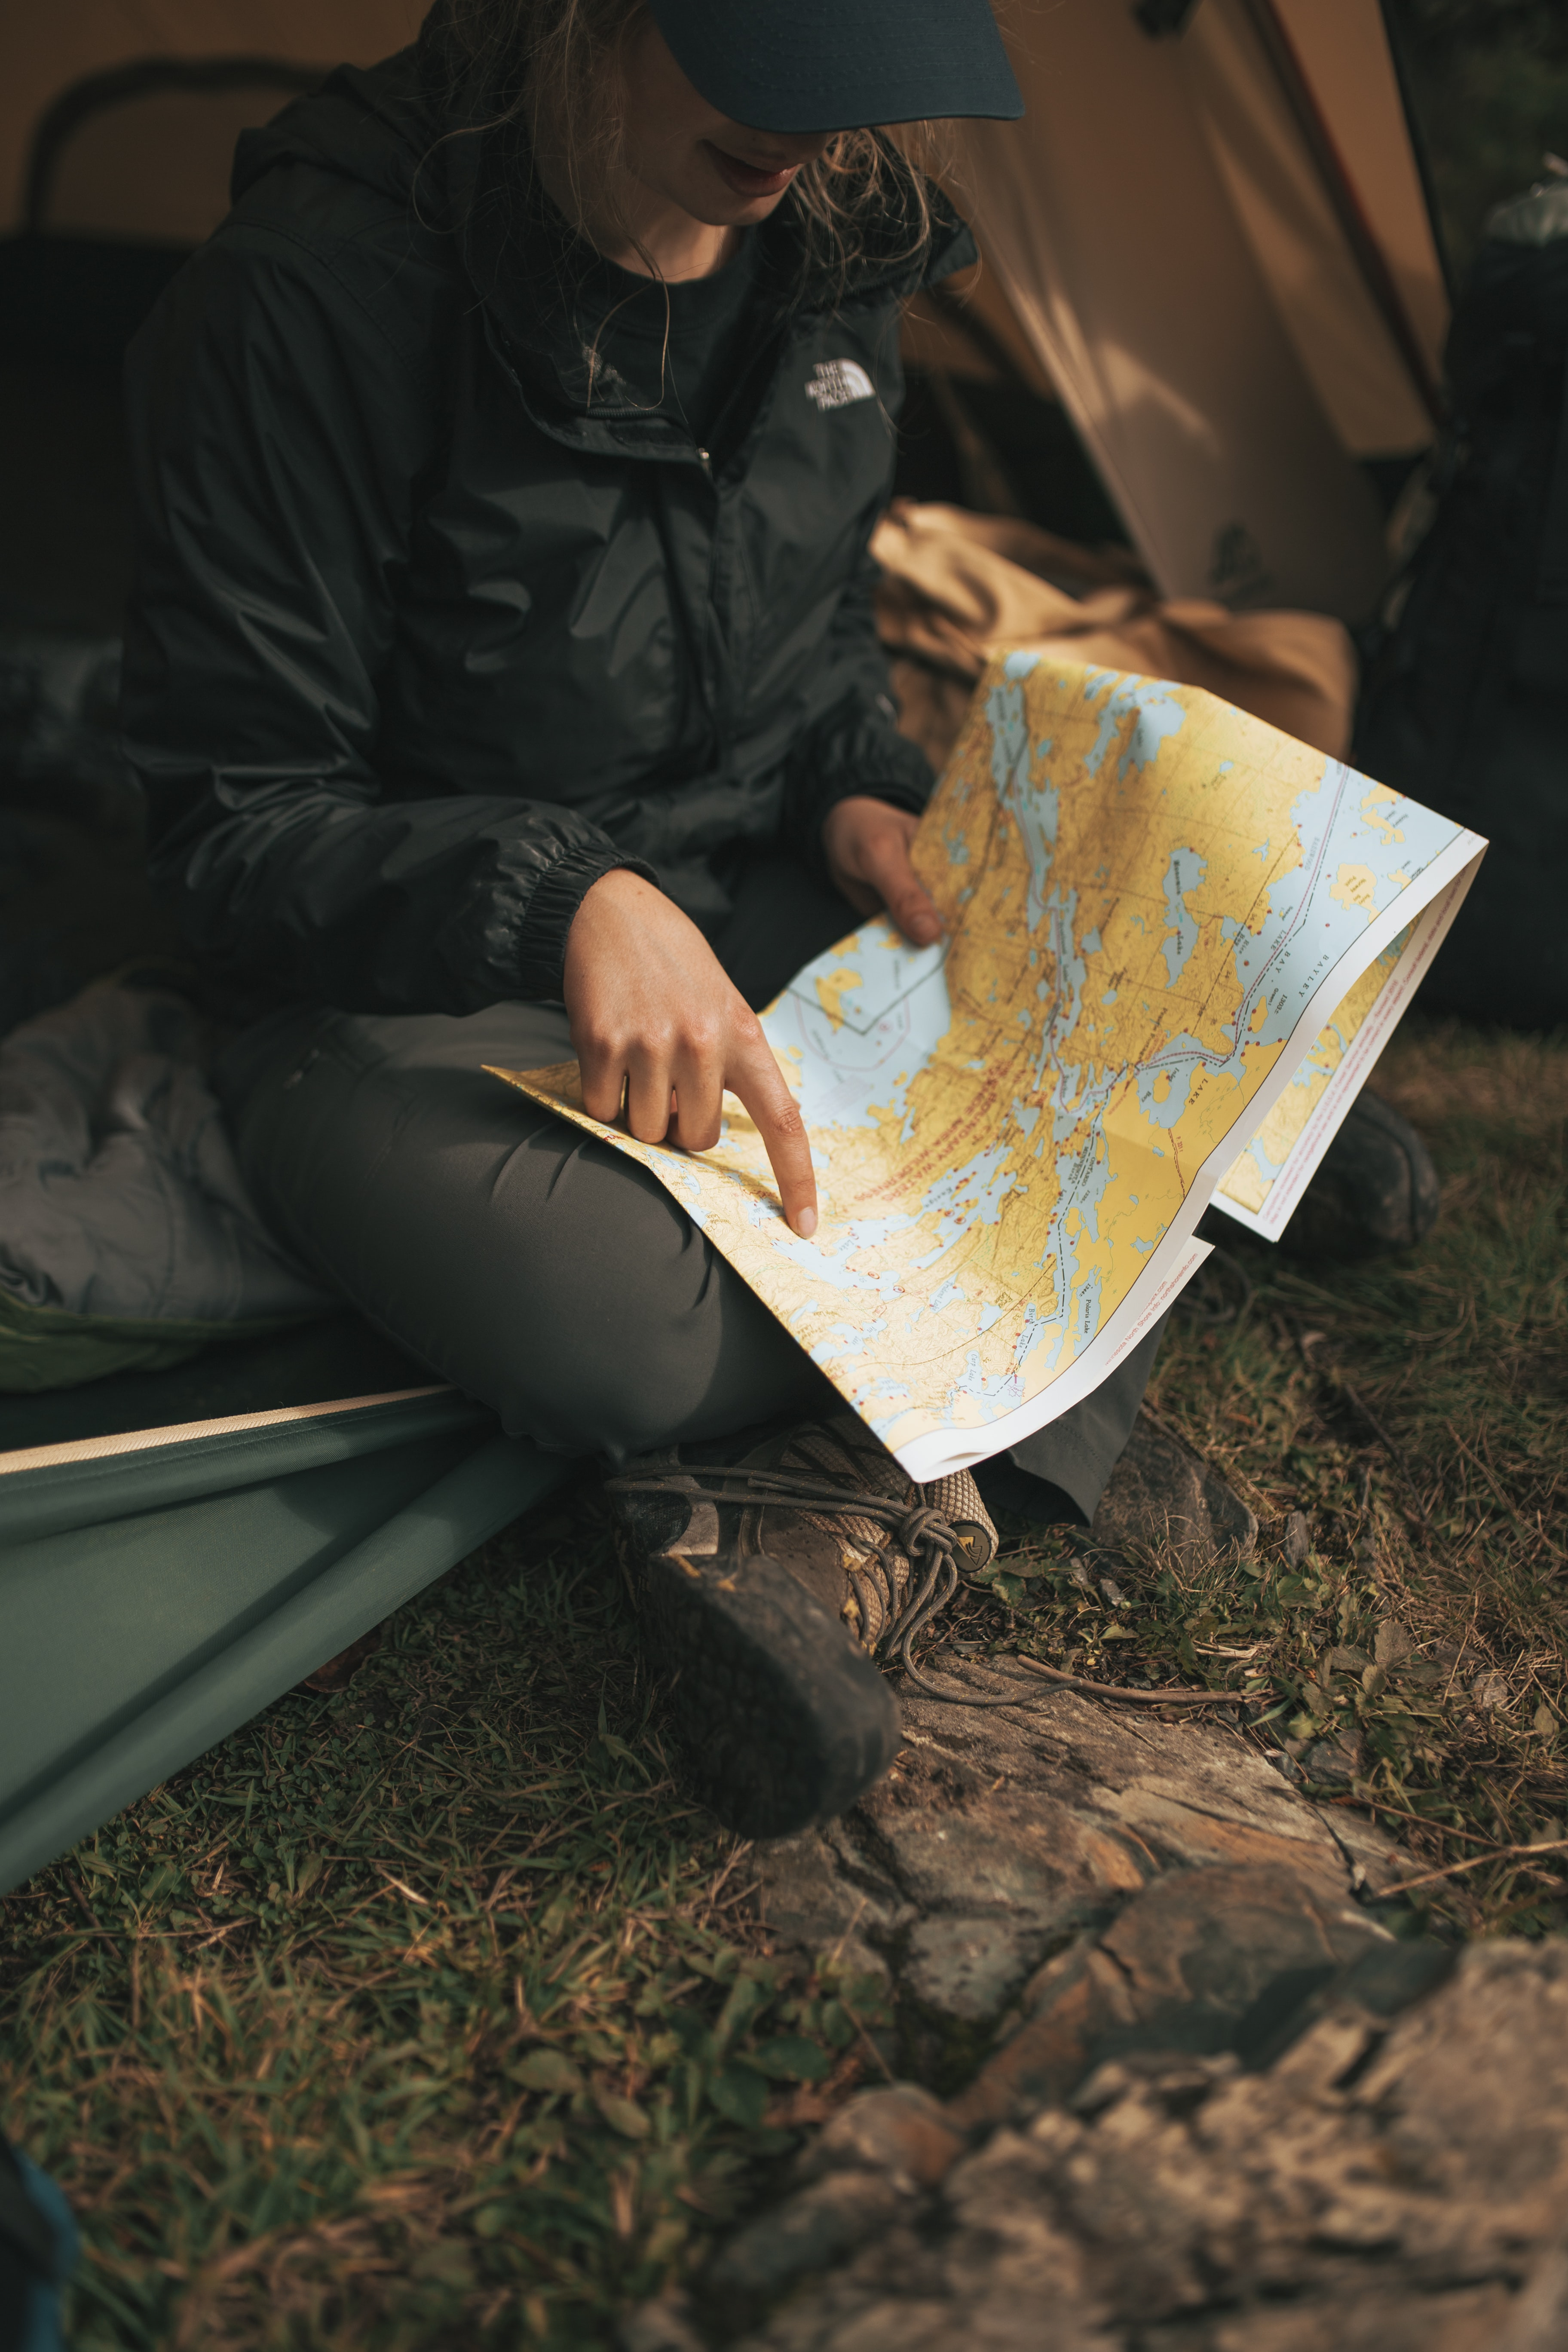 person wearing The North Face jacket sitting on sofa while holding map